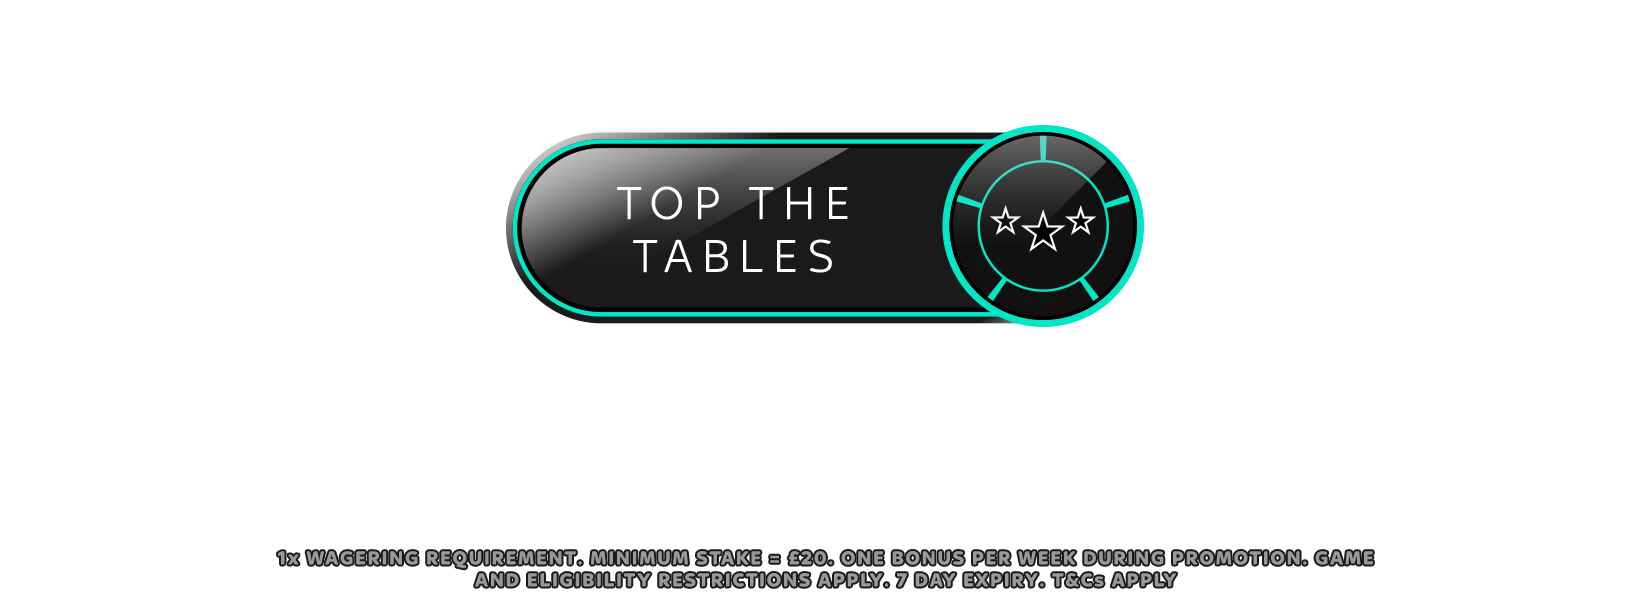 C.O.Top.The.Tables